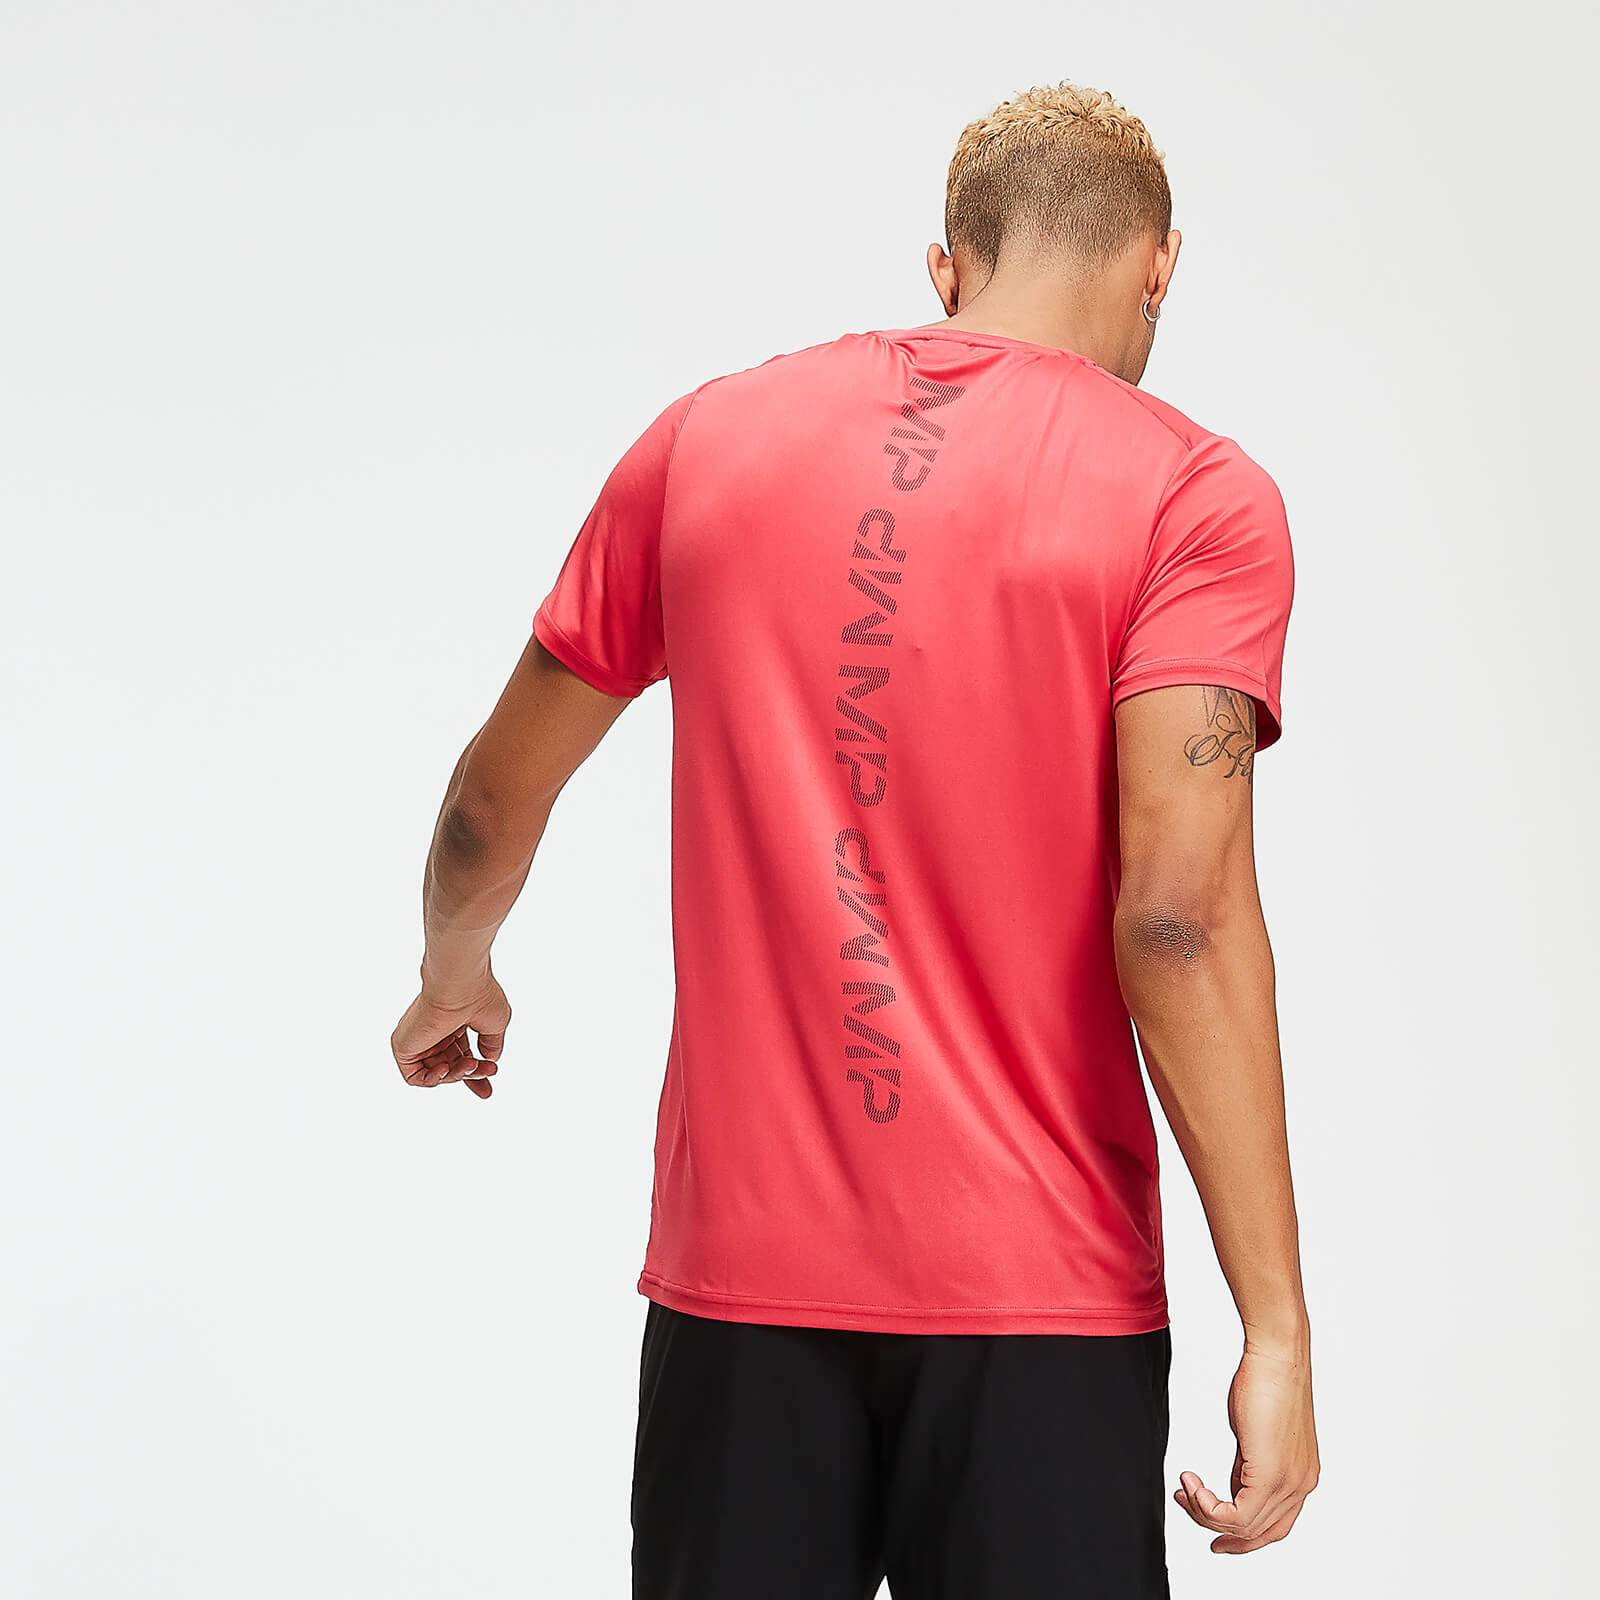 Myprotein MP Training Men's T-Shirt - Washed Red - M